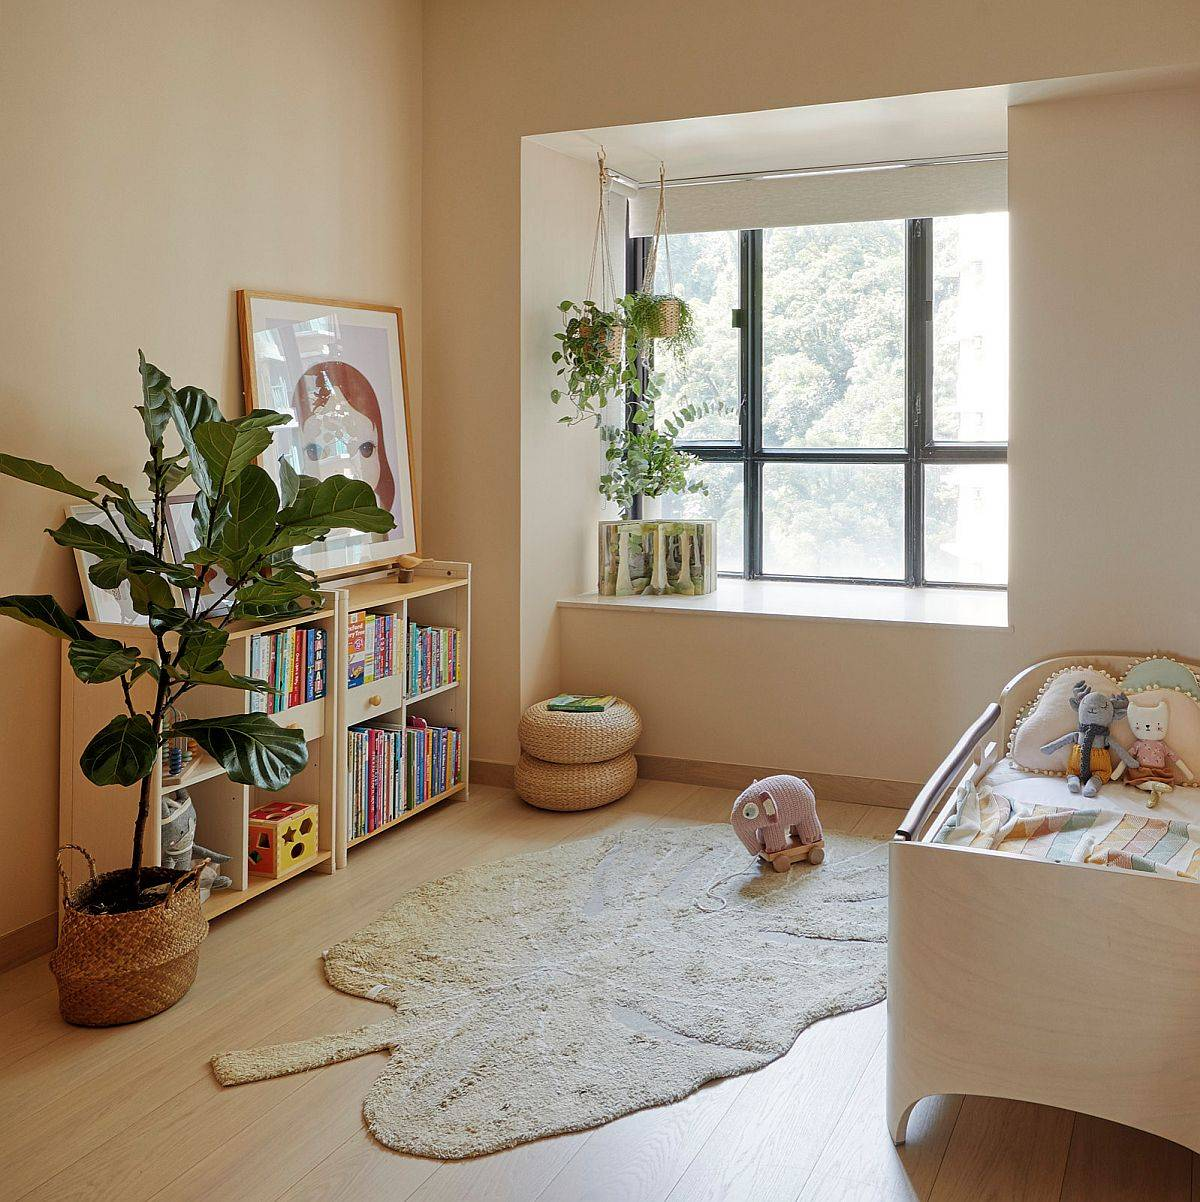 Lovely-earth-tones-bring-serenity-to-this-contemporary-nursery-89176